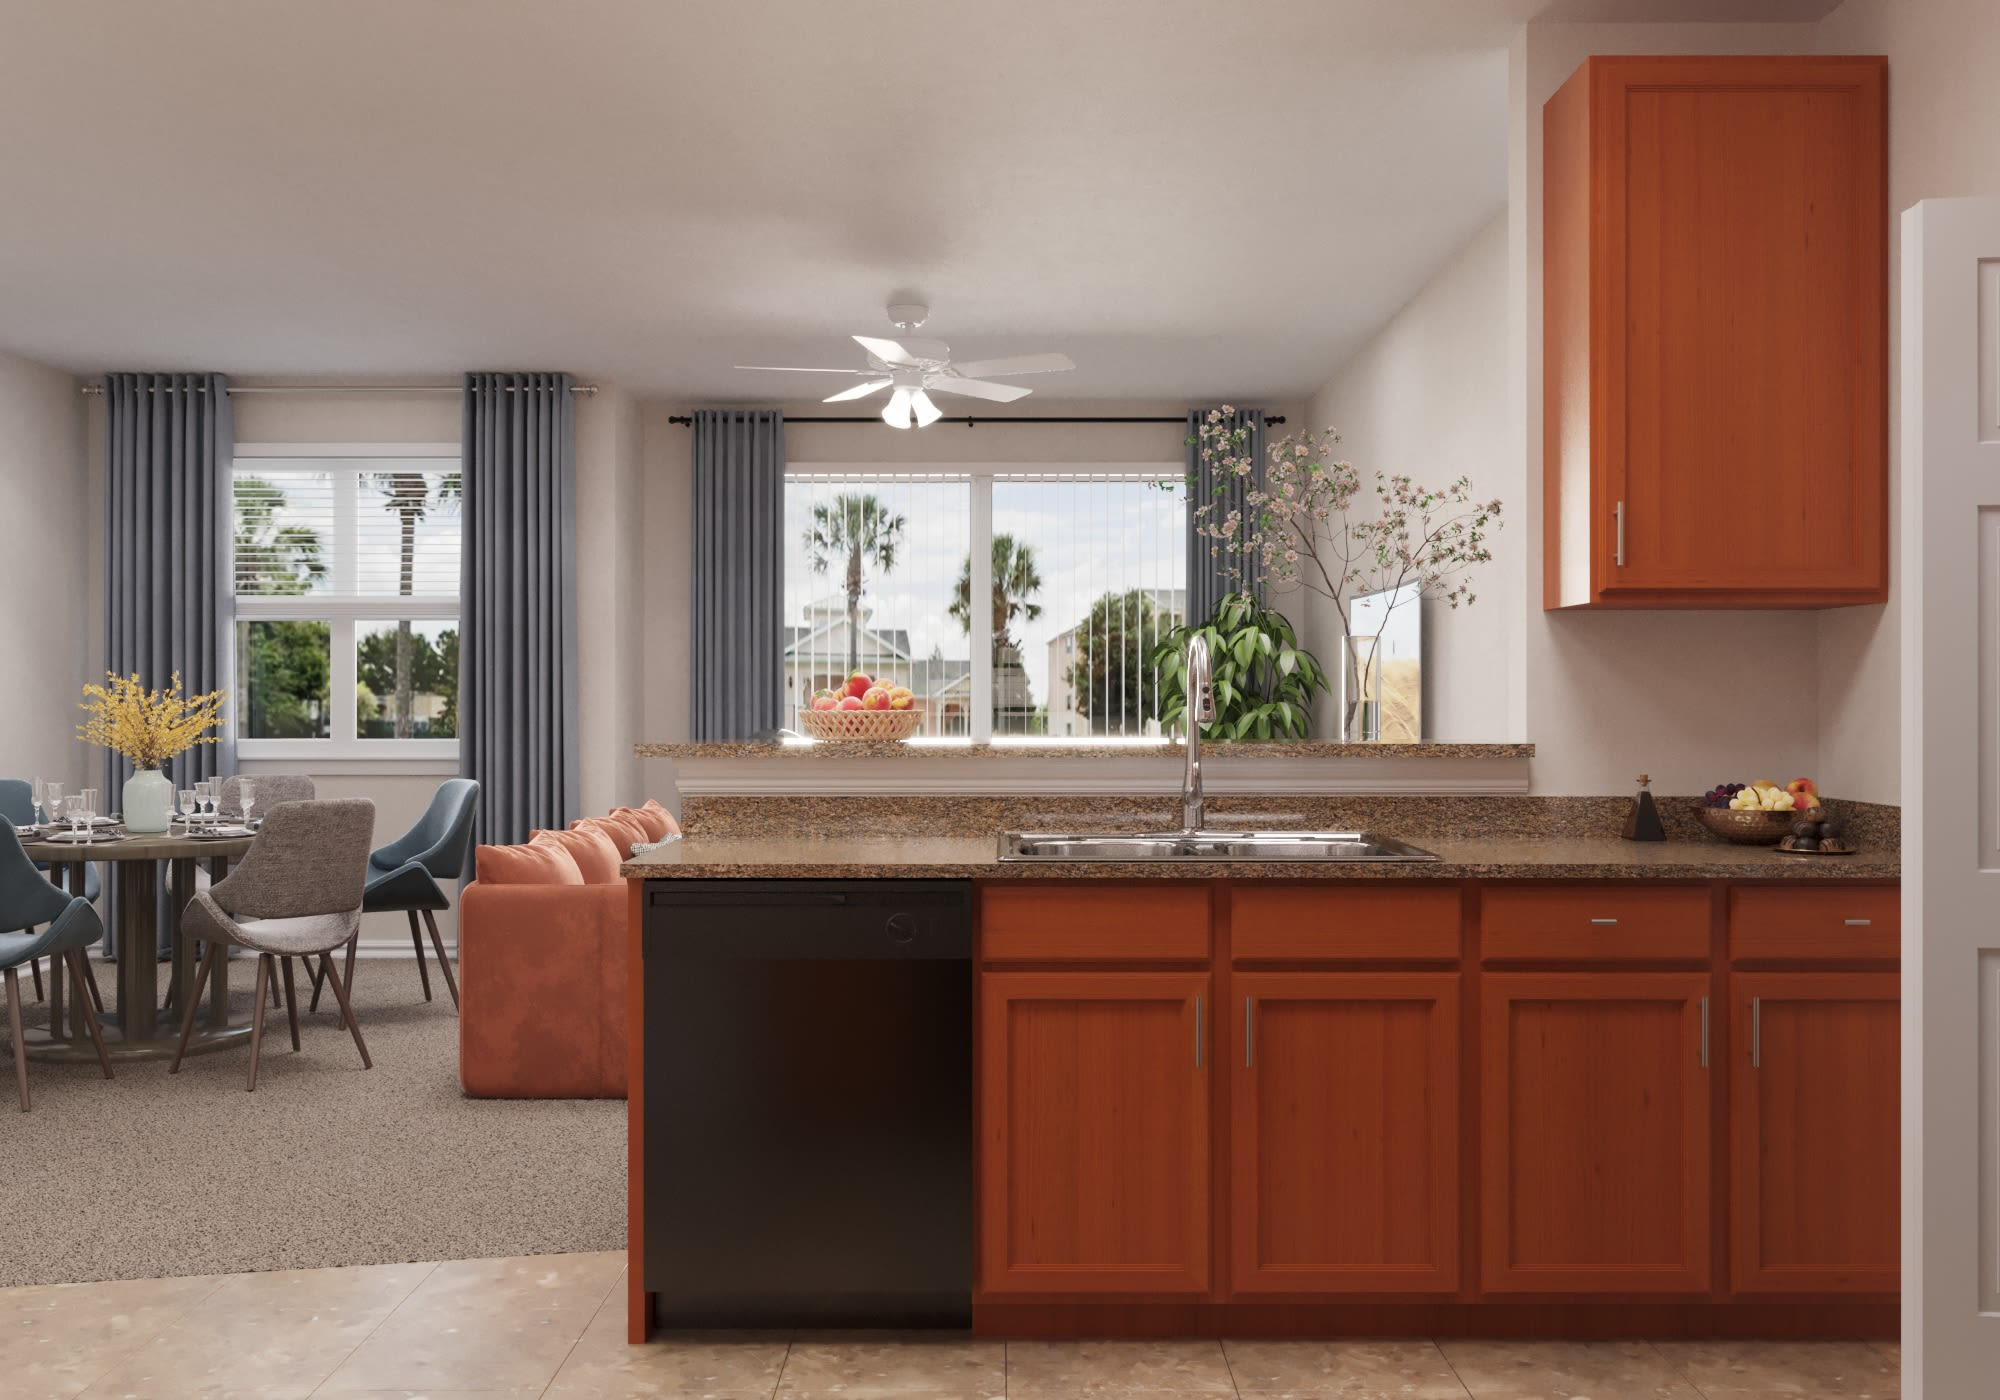 View virtual tour of our furnished two bedroom apartment at The Aspect in Kissimmee, Florida